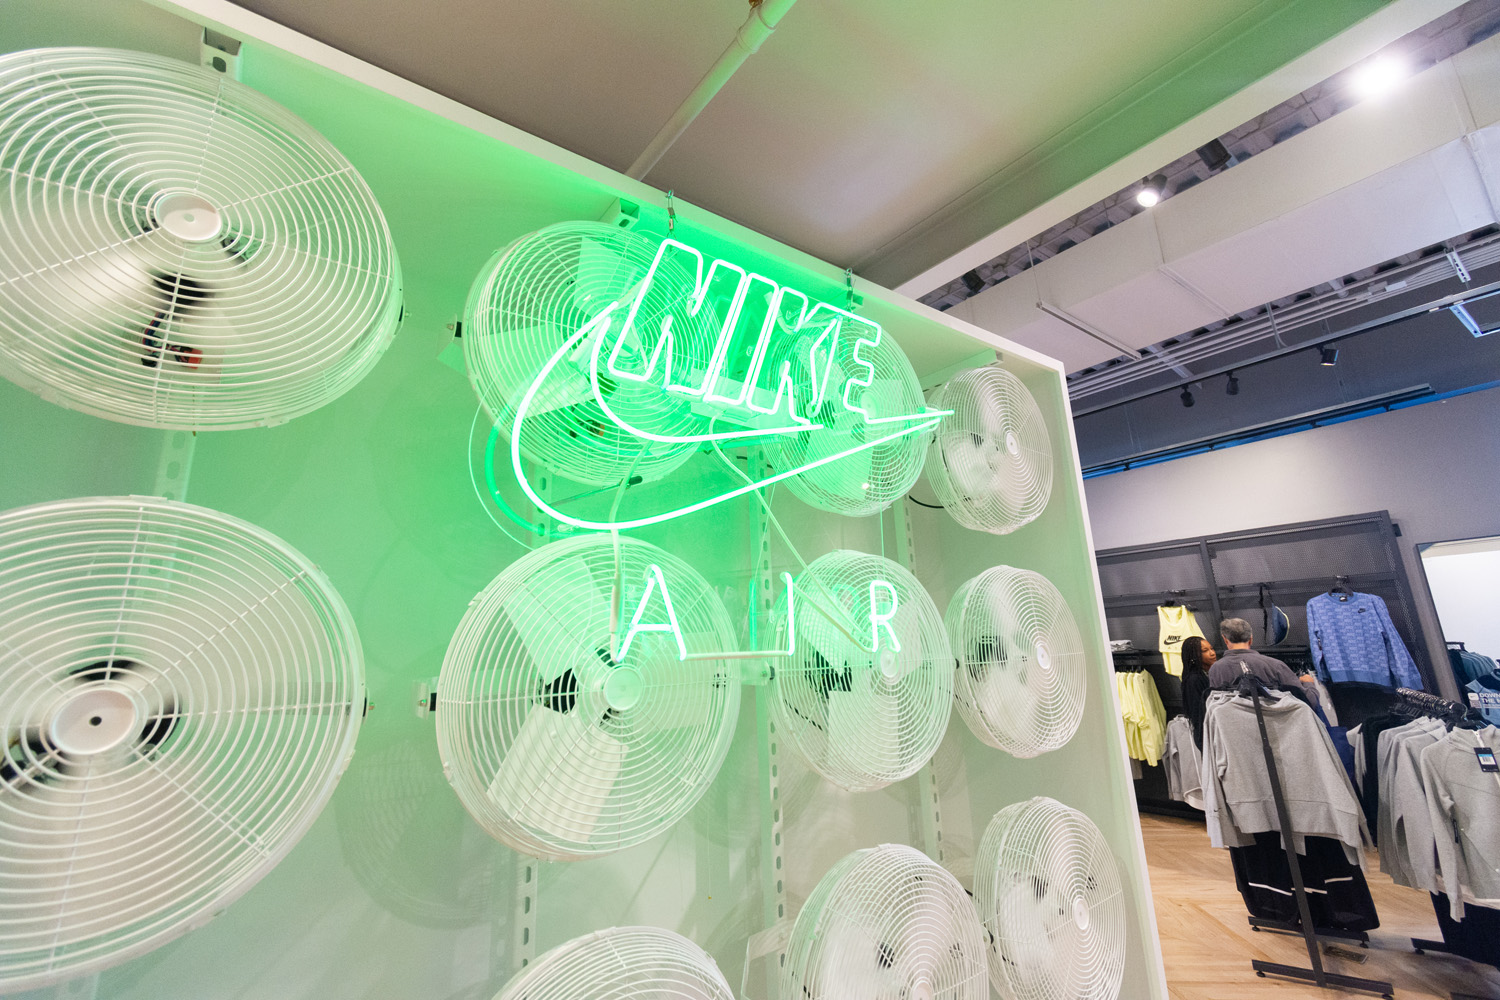 Nike Neon Sign - Fabrication